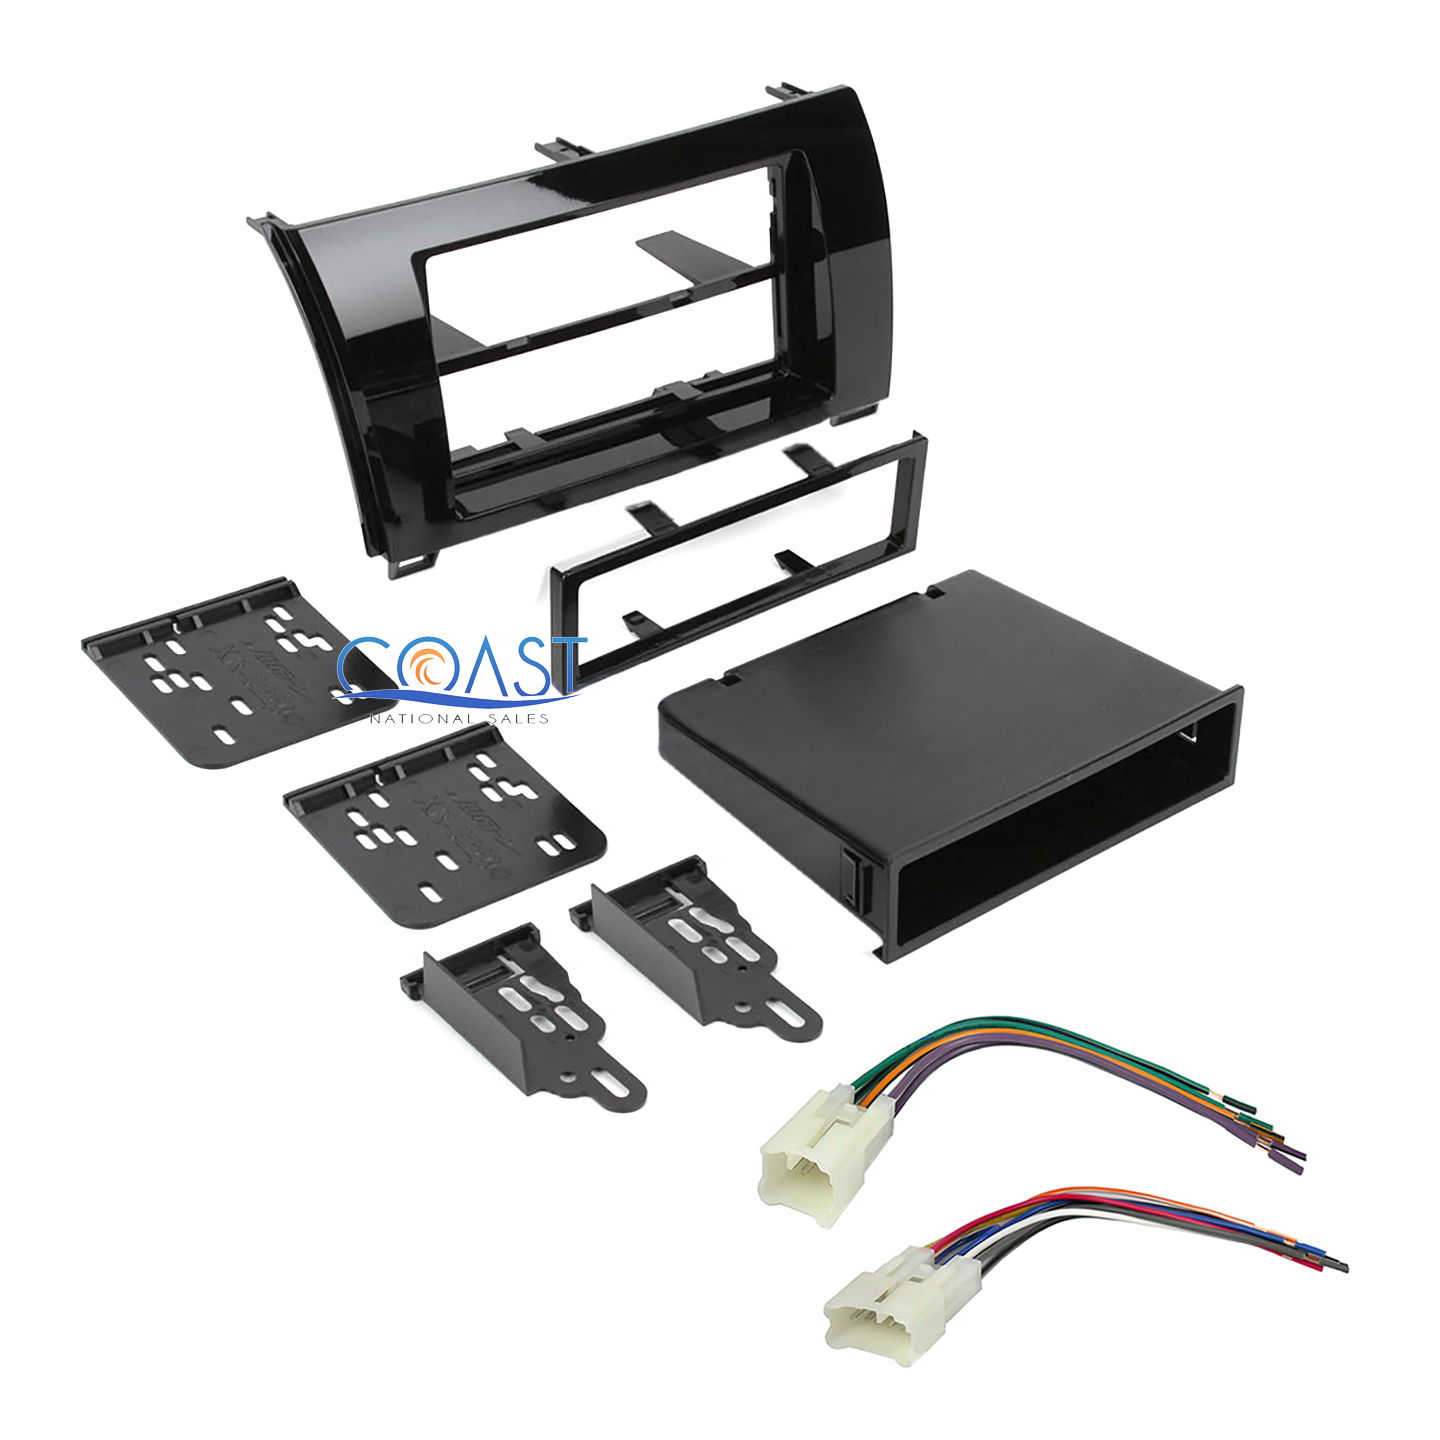 Car Radio Stereo Single Double Din Dash Kit for 2007-2013 Toyota Tundra Sequoia